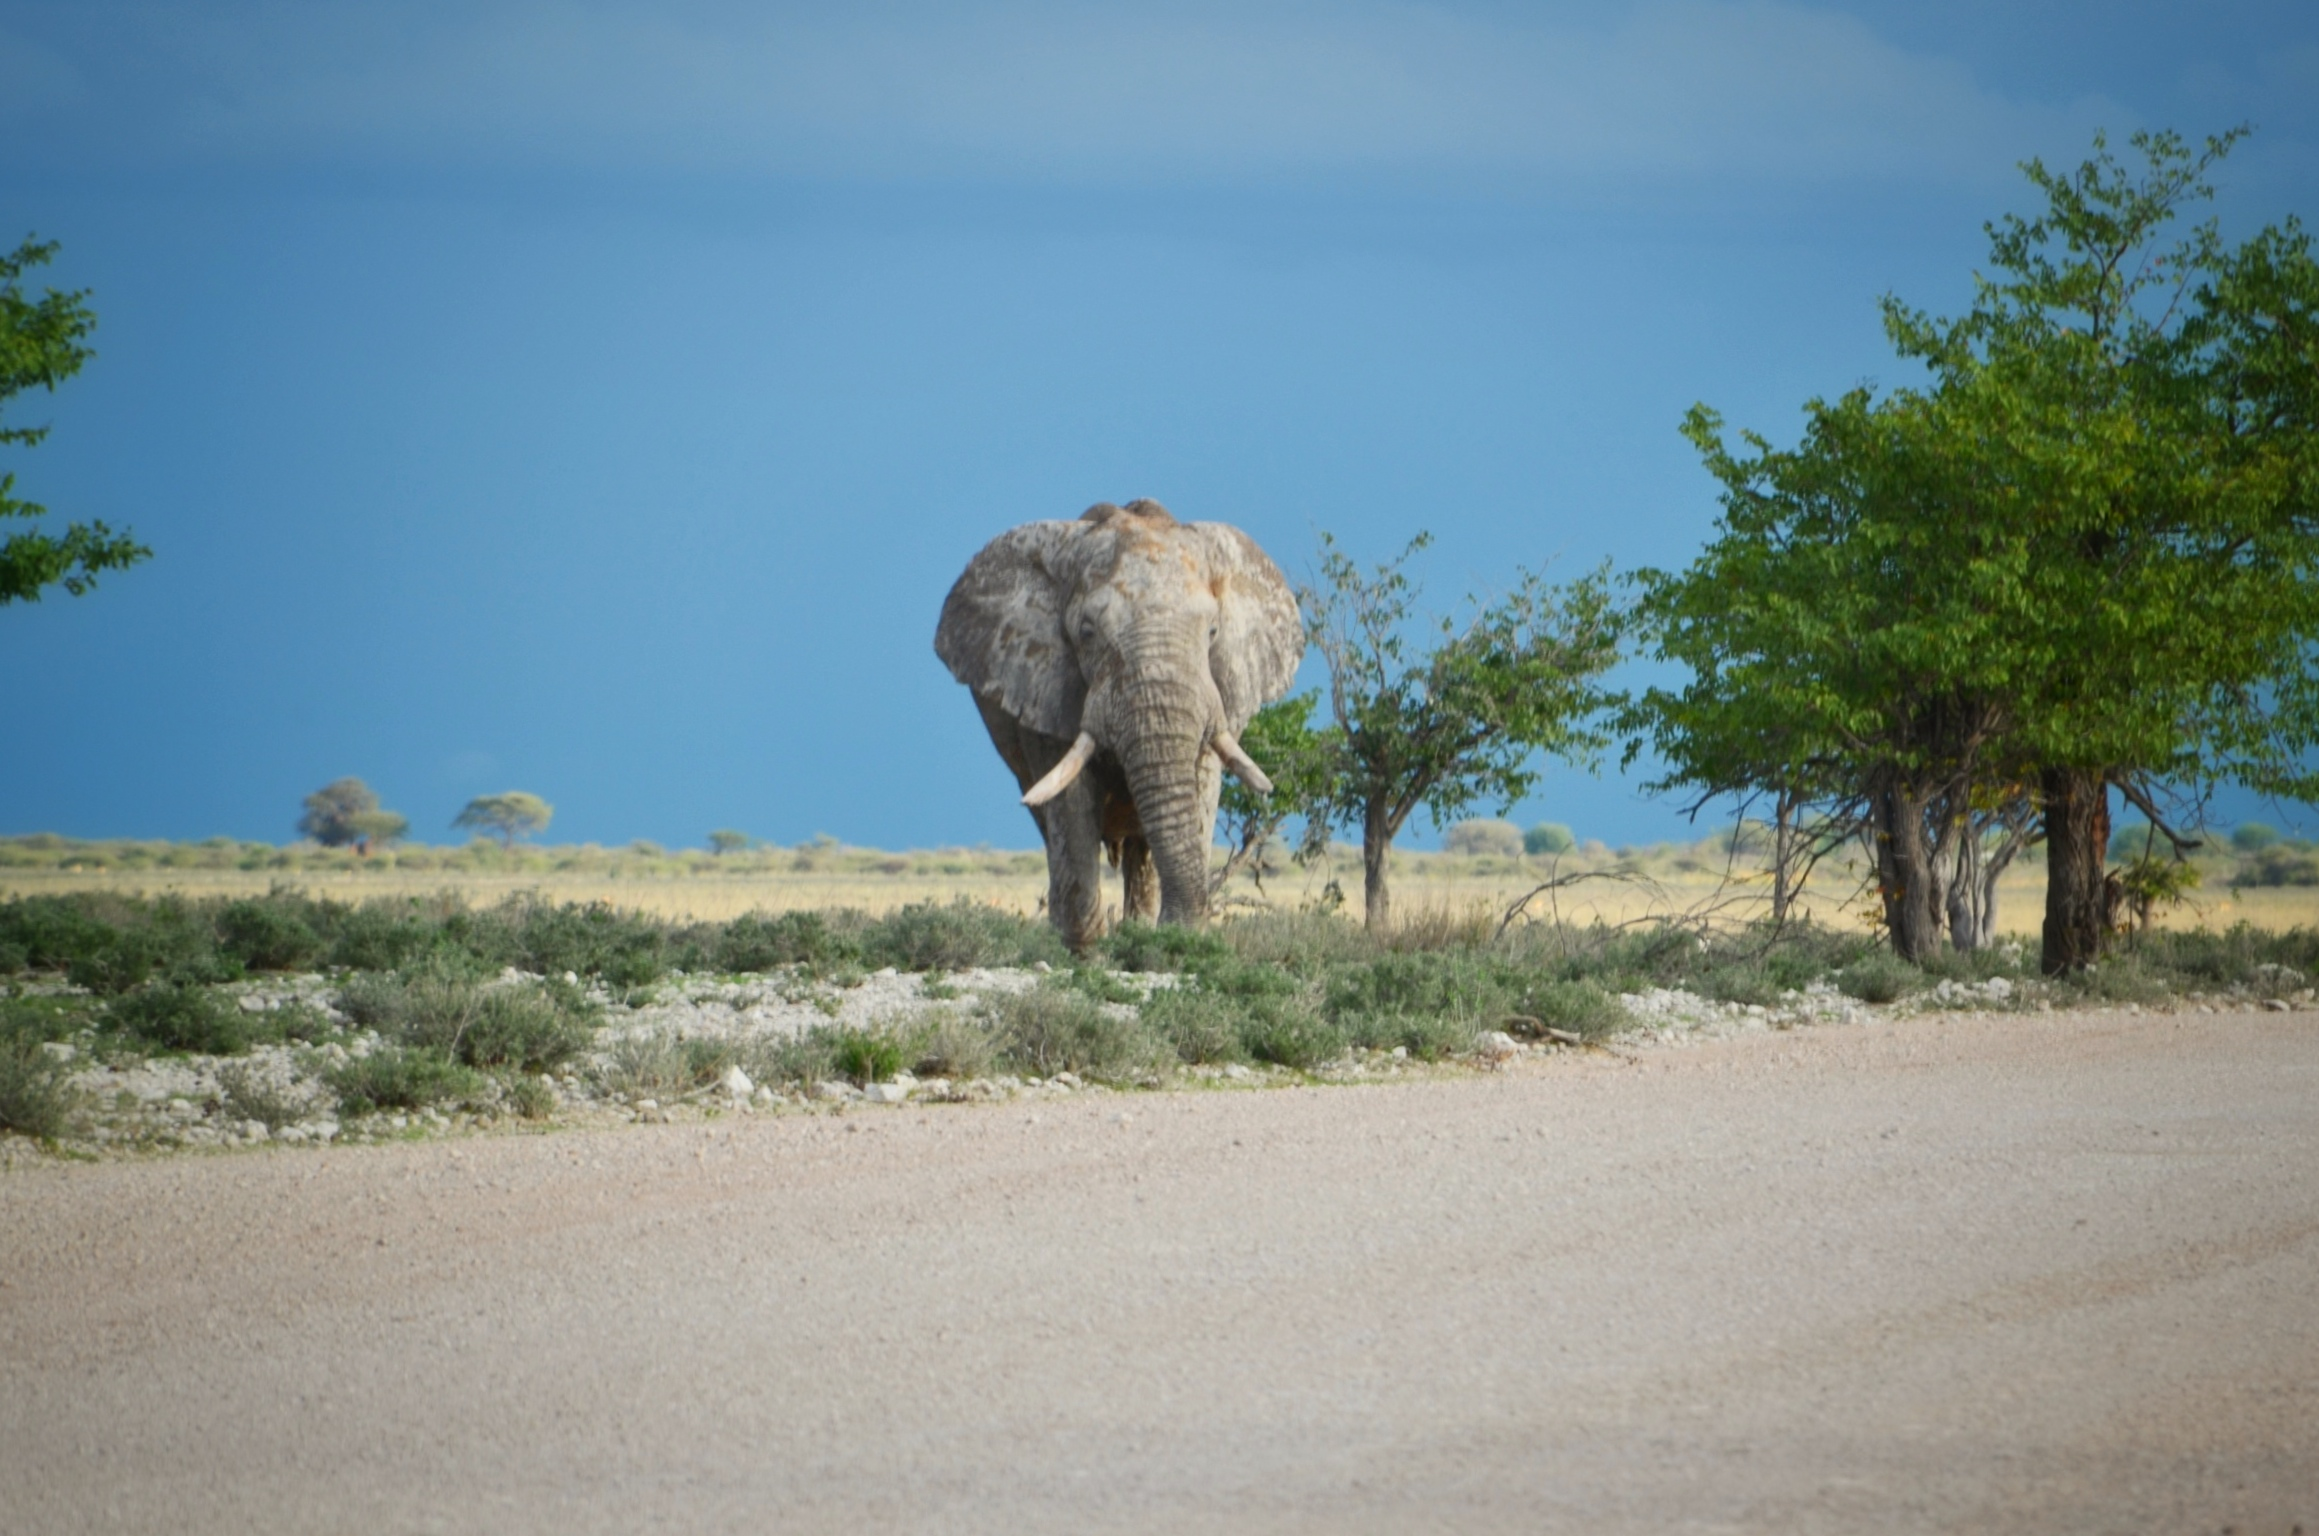 etosha essay Etosha cosystem that contains many interacting species of organisms and their physical environment as the seasons change, the temperature and climate affect the biotic and abiotic factors.